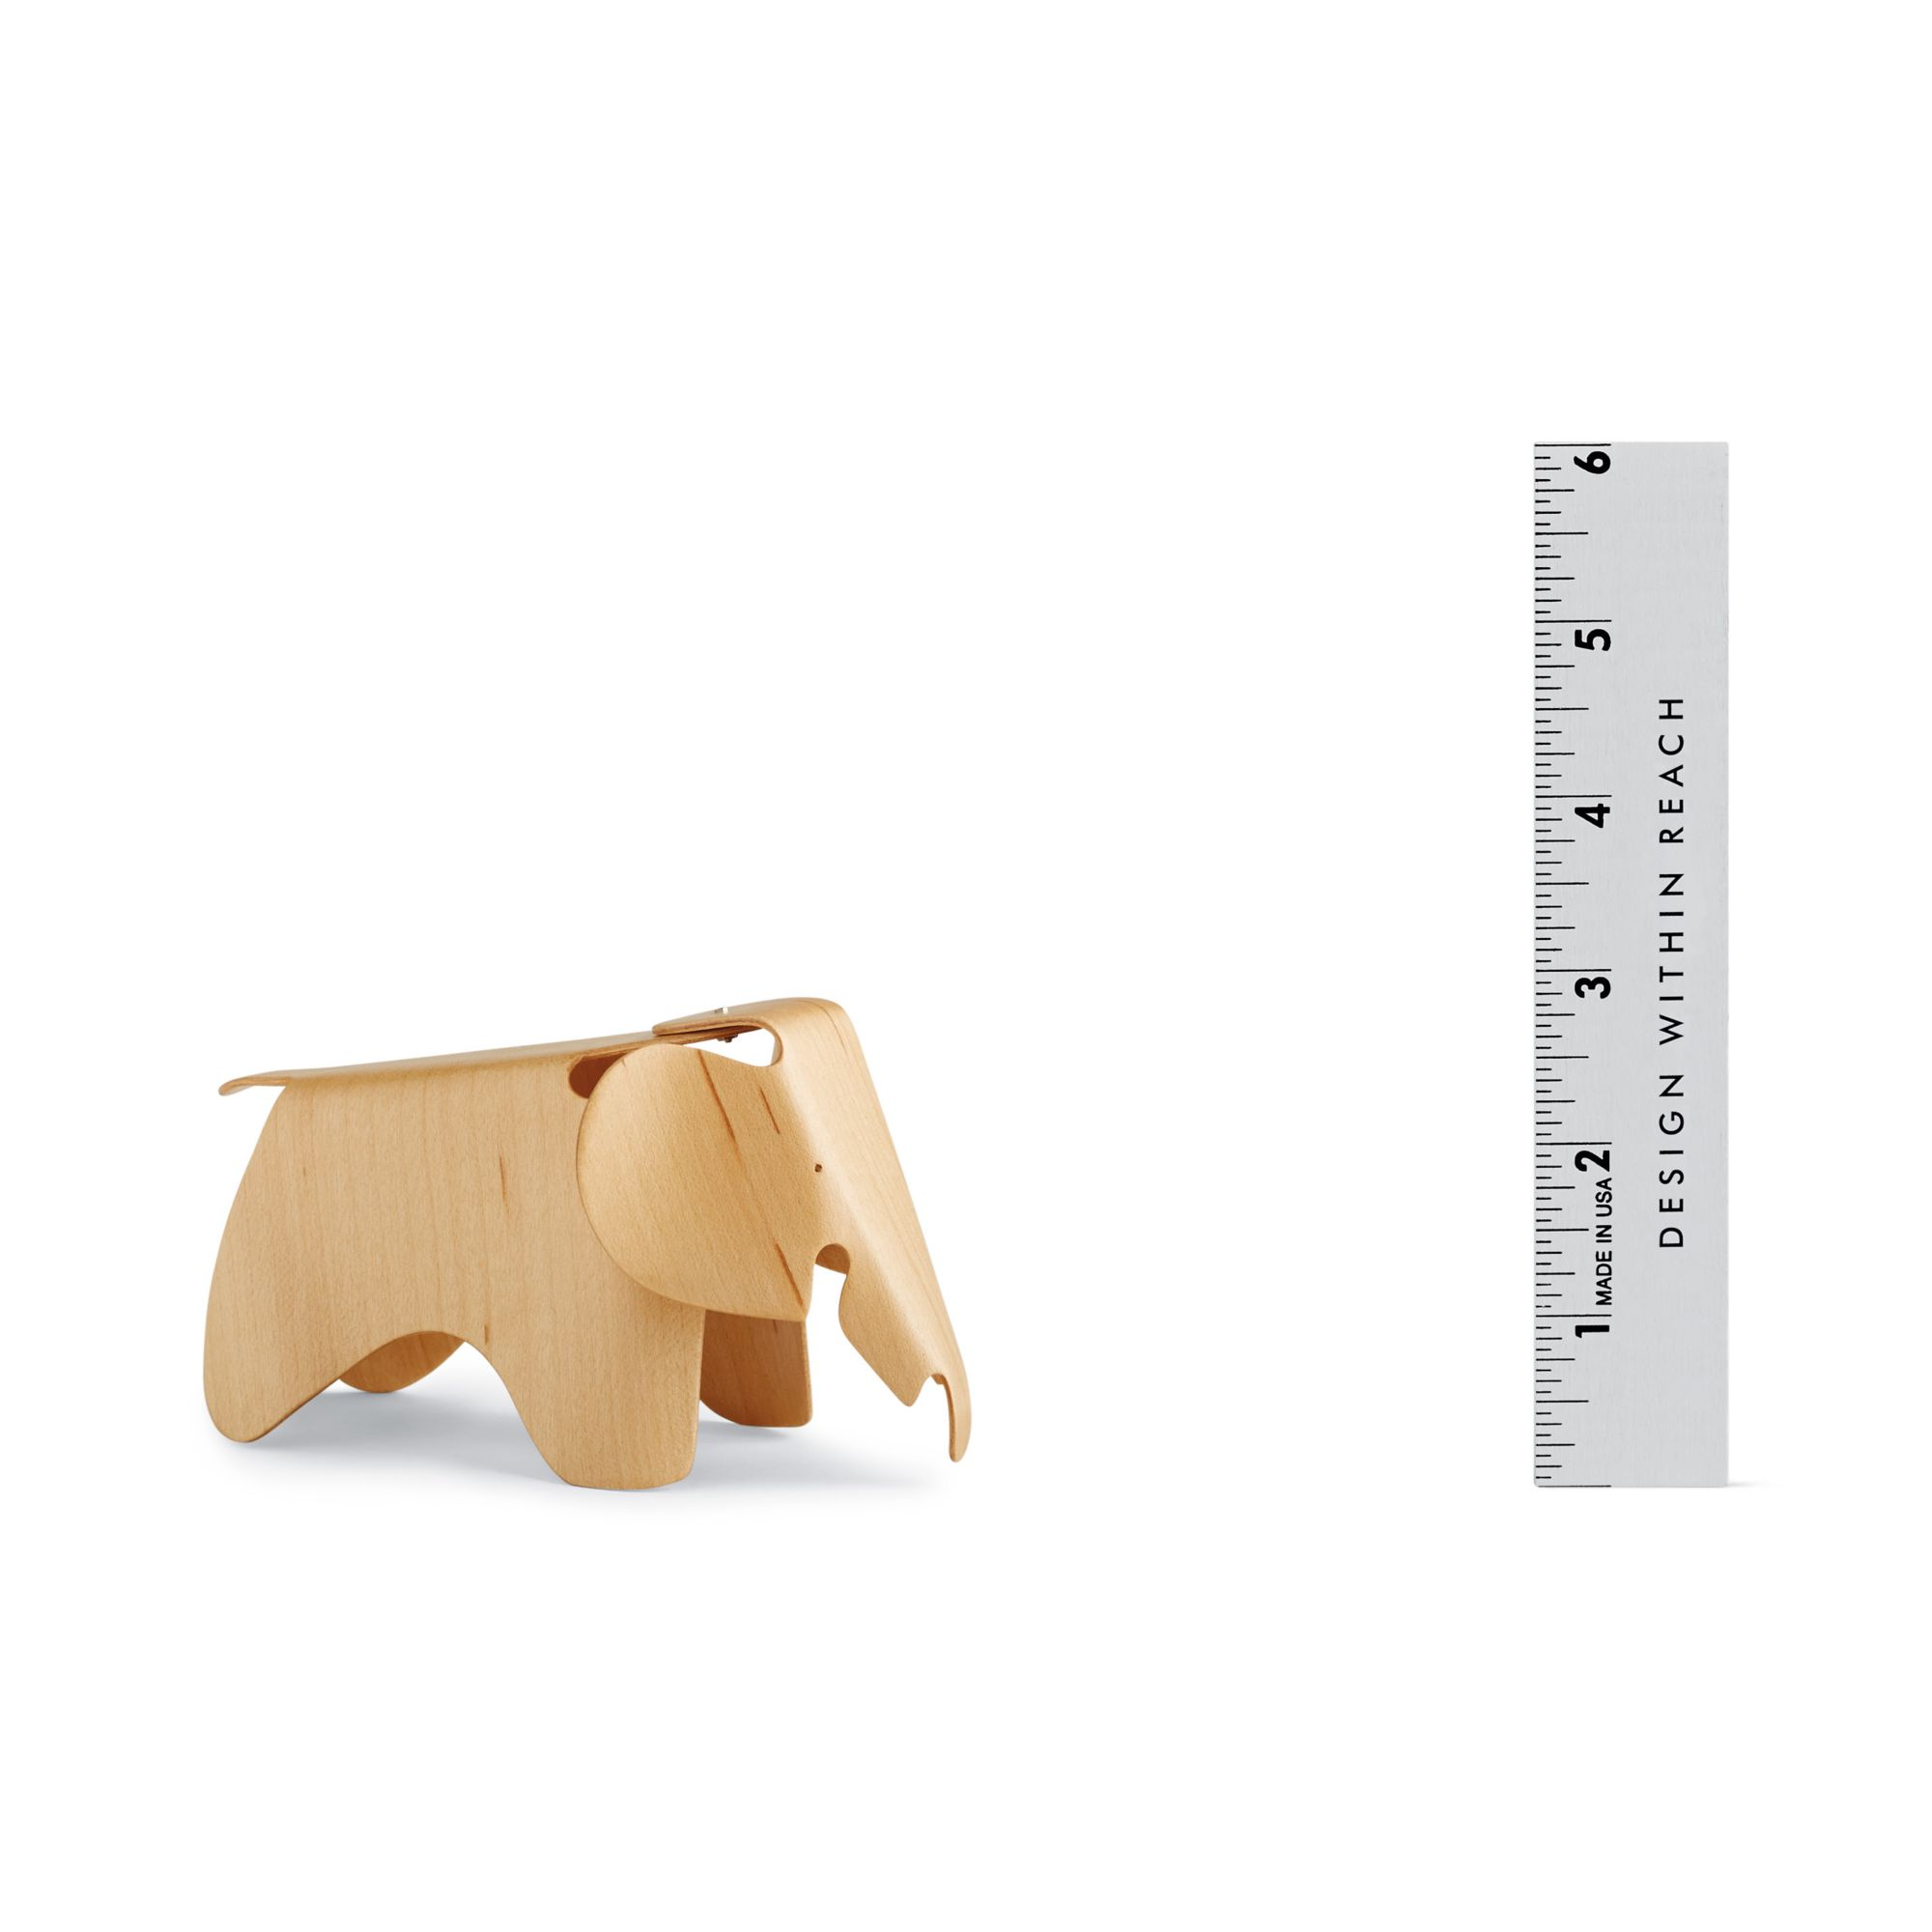 Vitra Miniatures Collection: Eames Plywood Elephant